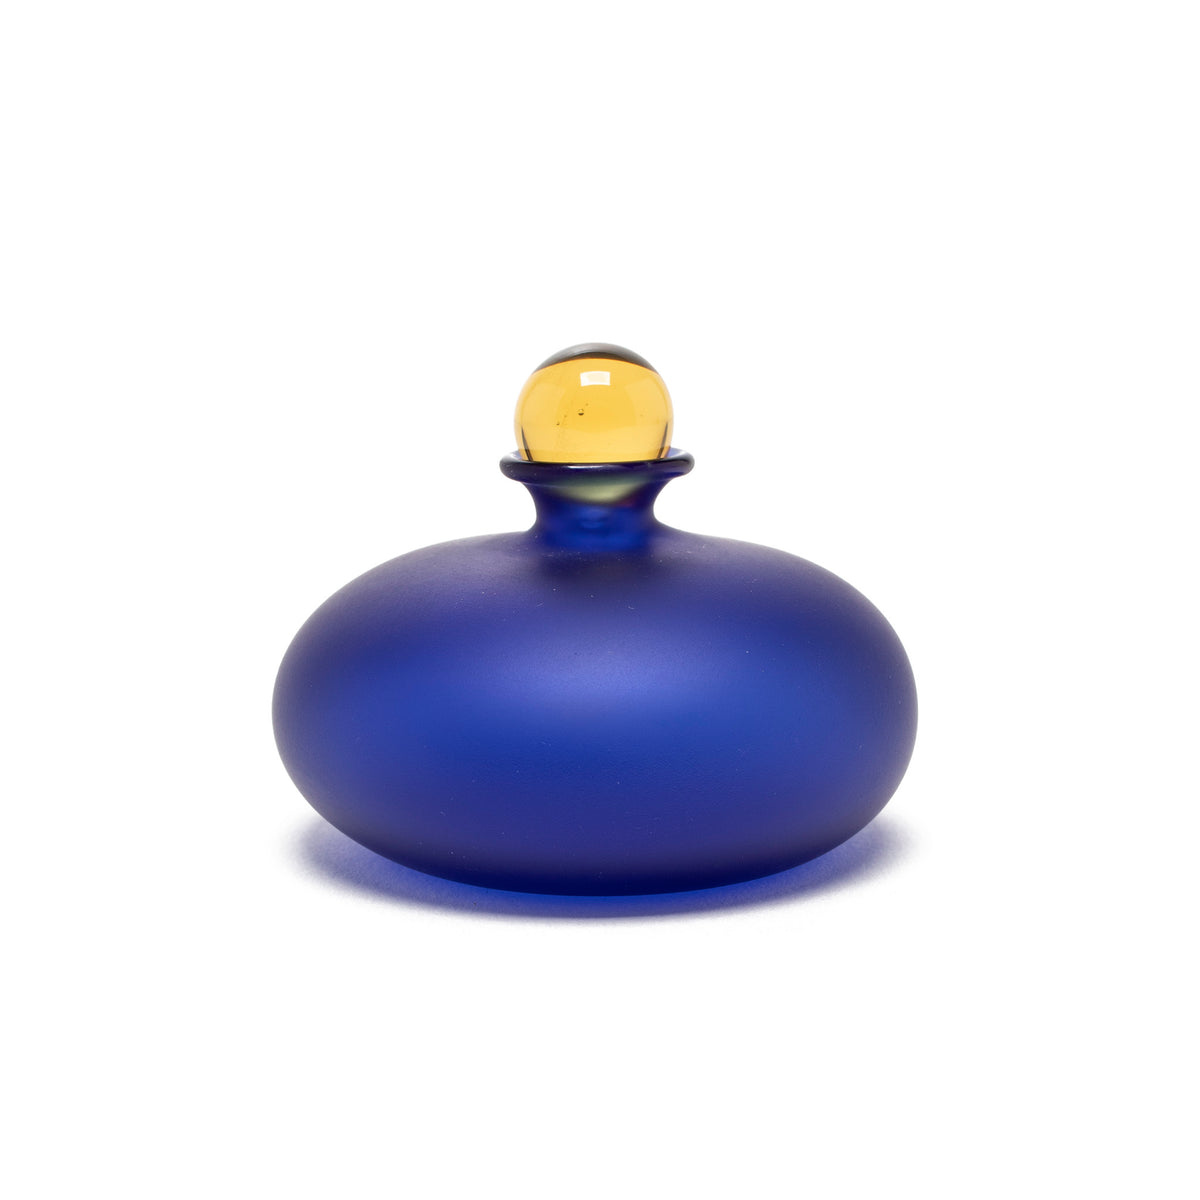 Murano Glass Perfume Bottle - Micro Flat Style in Blue/Amber